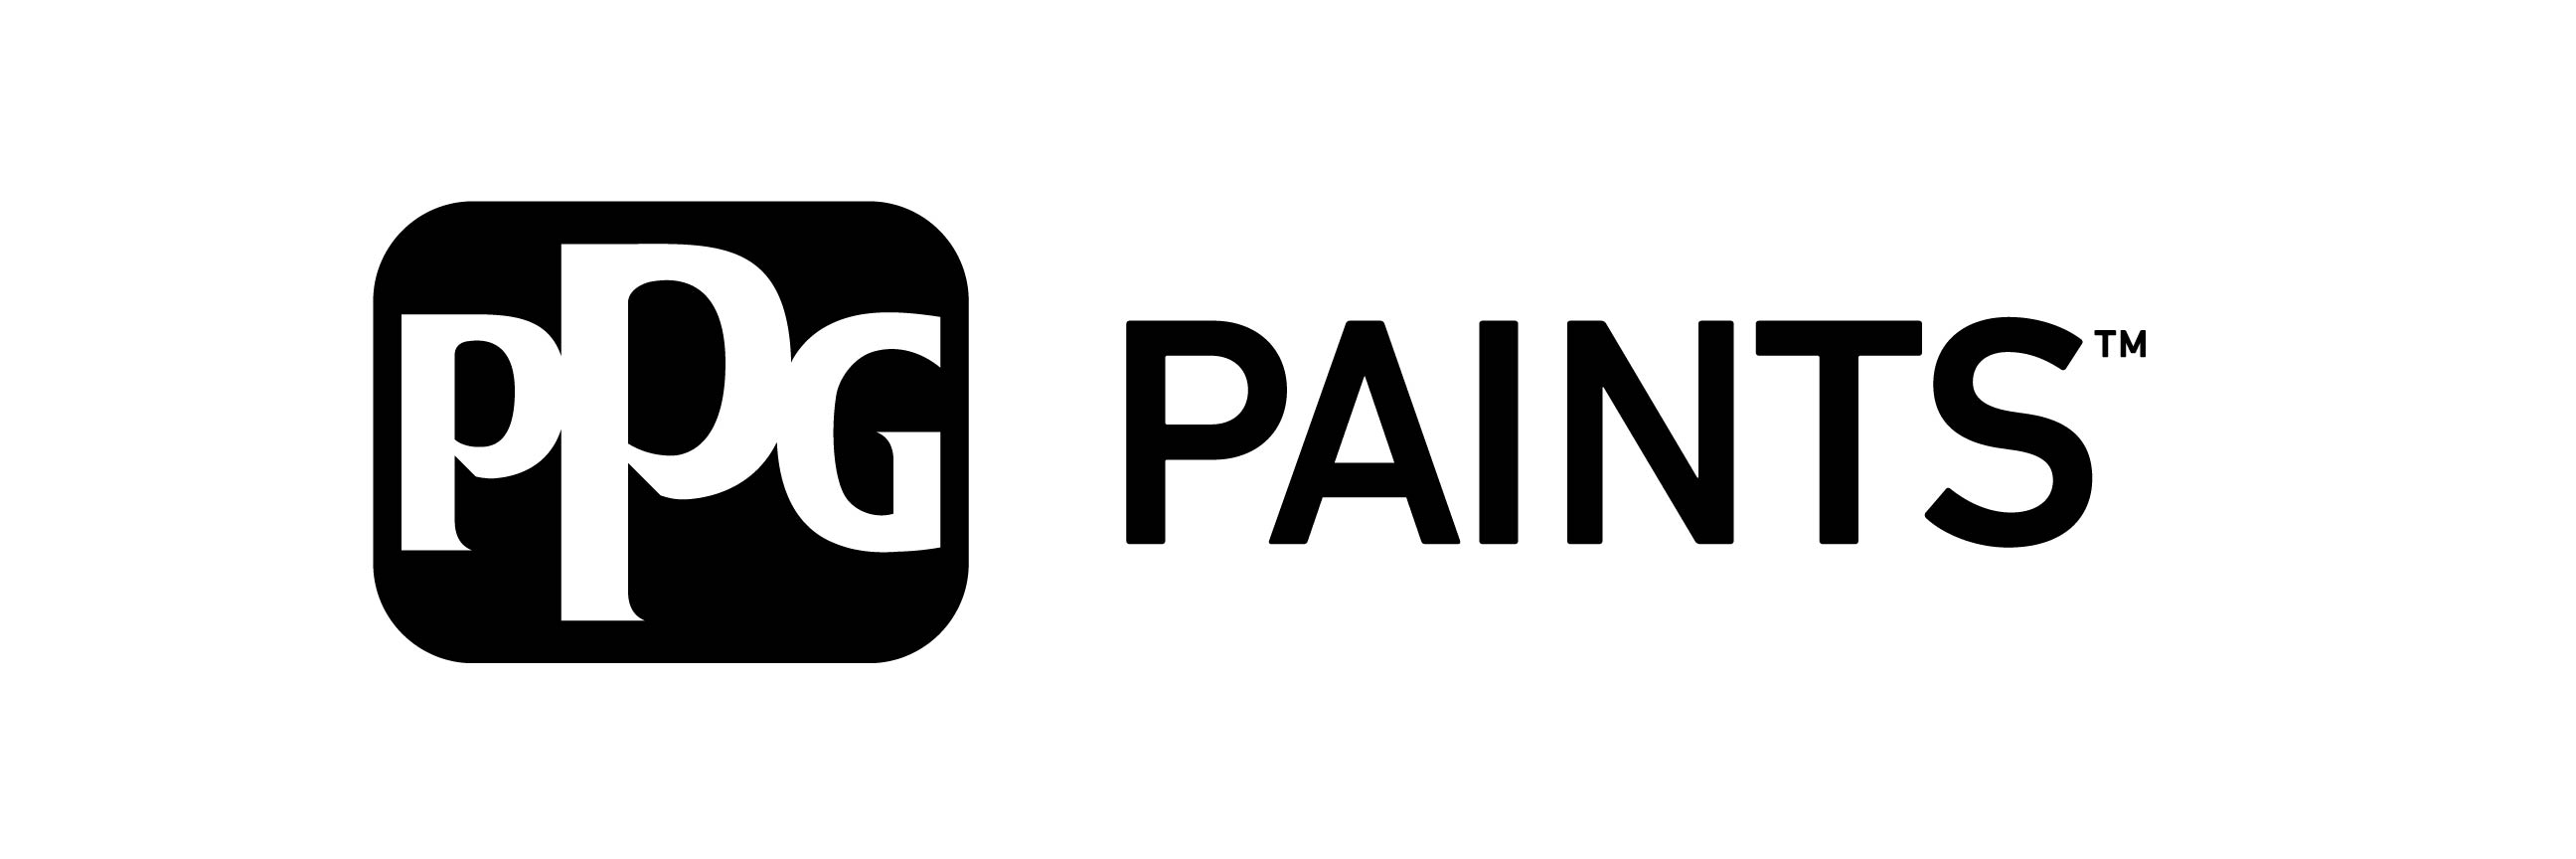 ppg-paints-blk.jpg